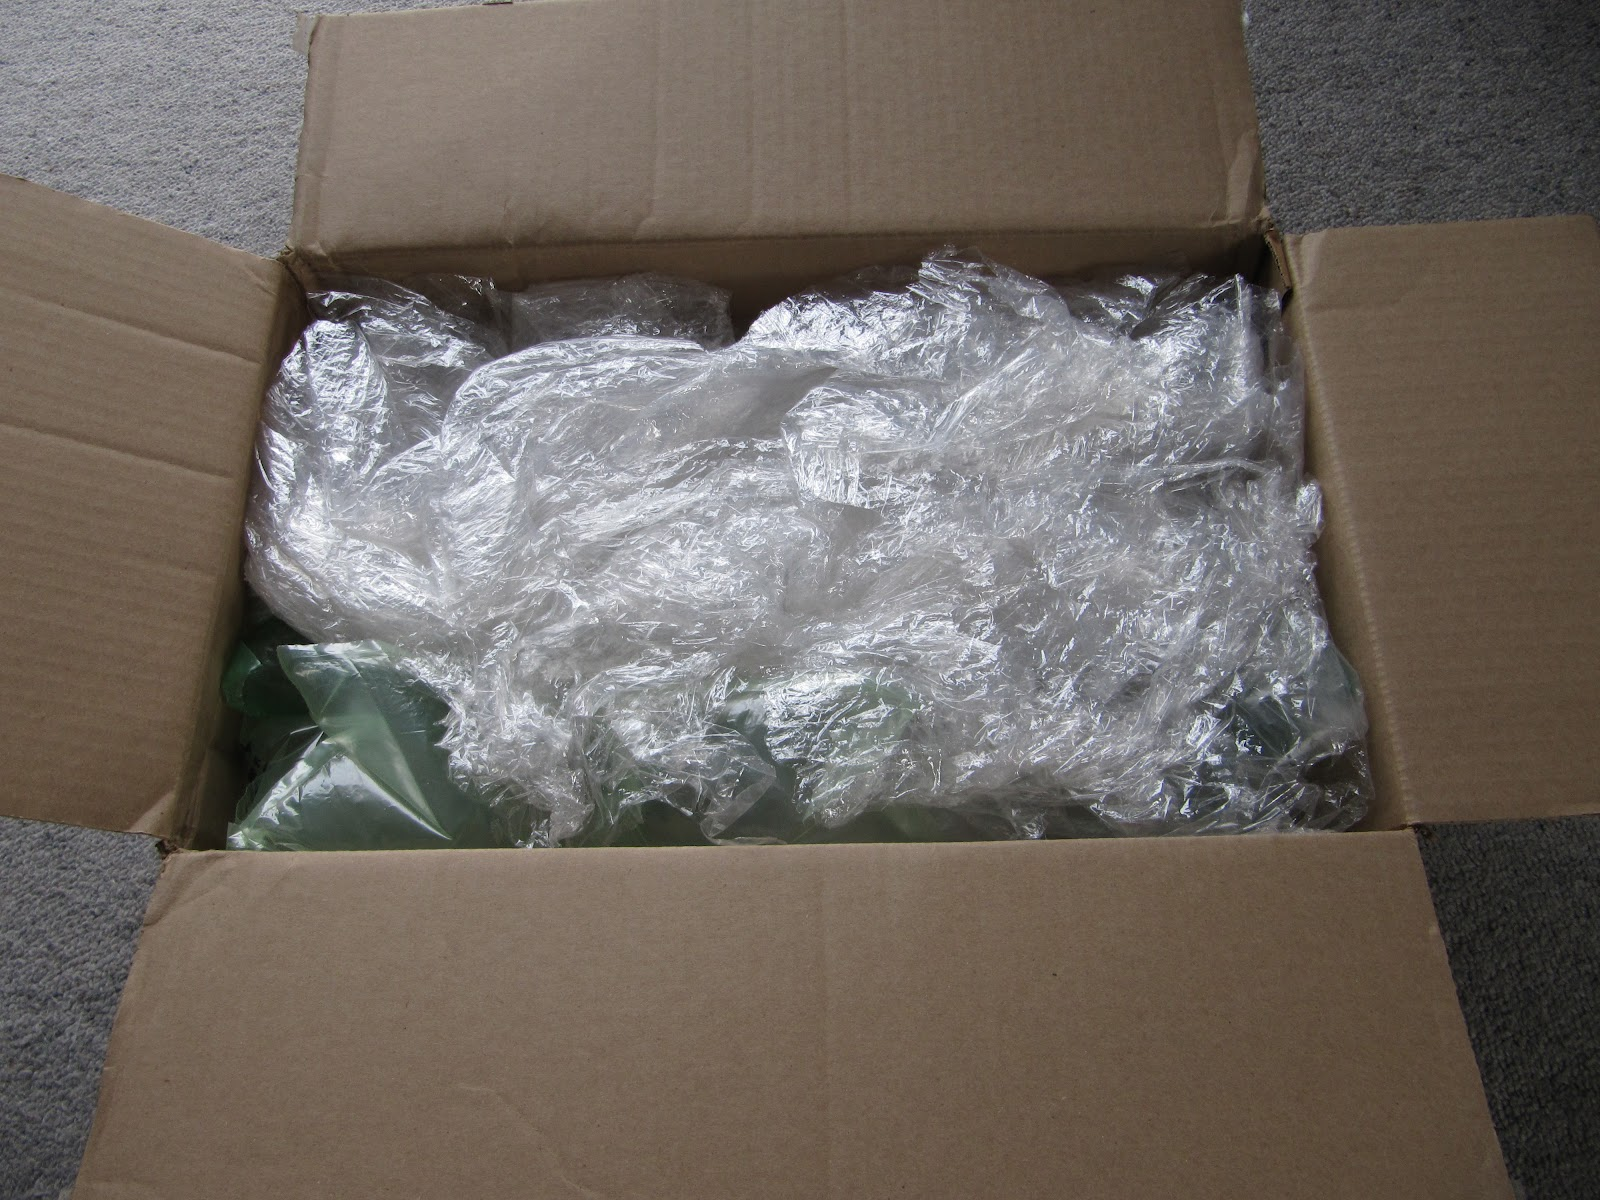 Dusts Reprap Parts From Mendelmaxcom Solid State Relay Crammed With Packaging